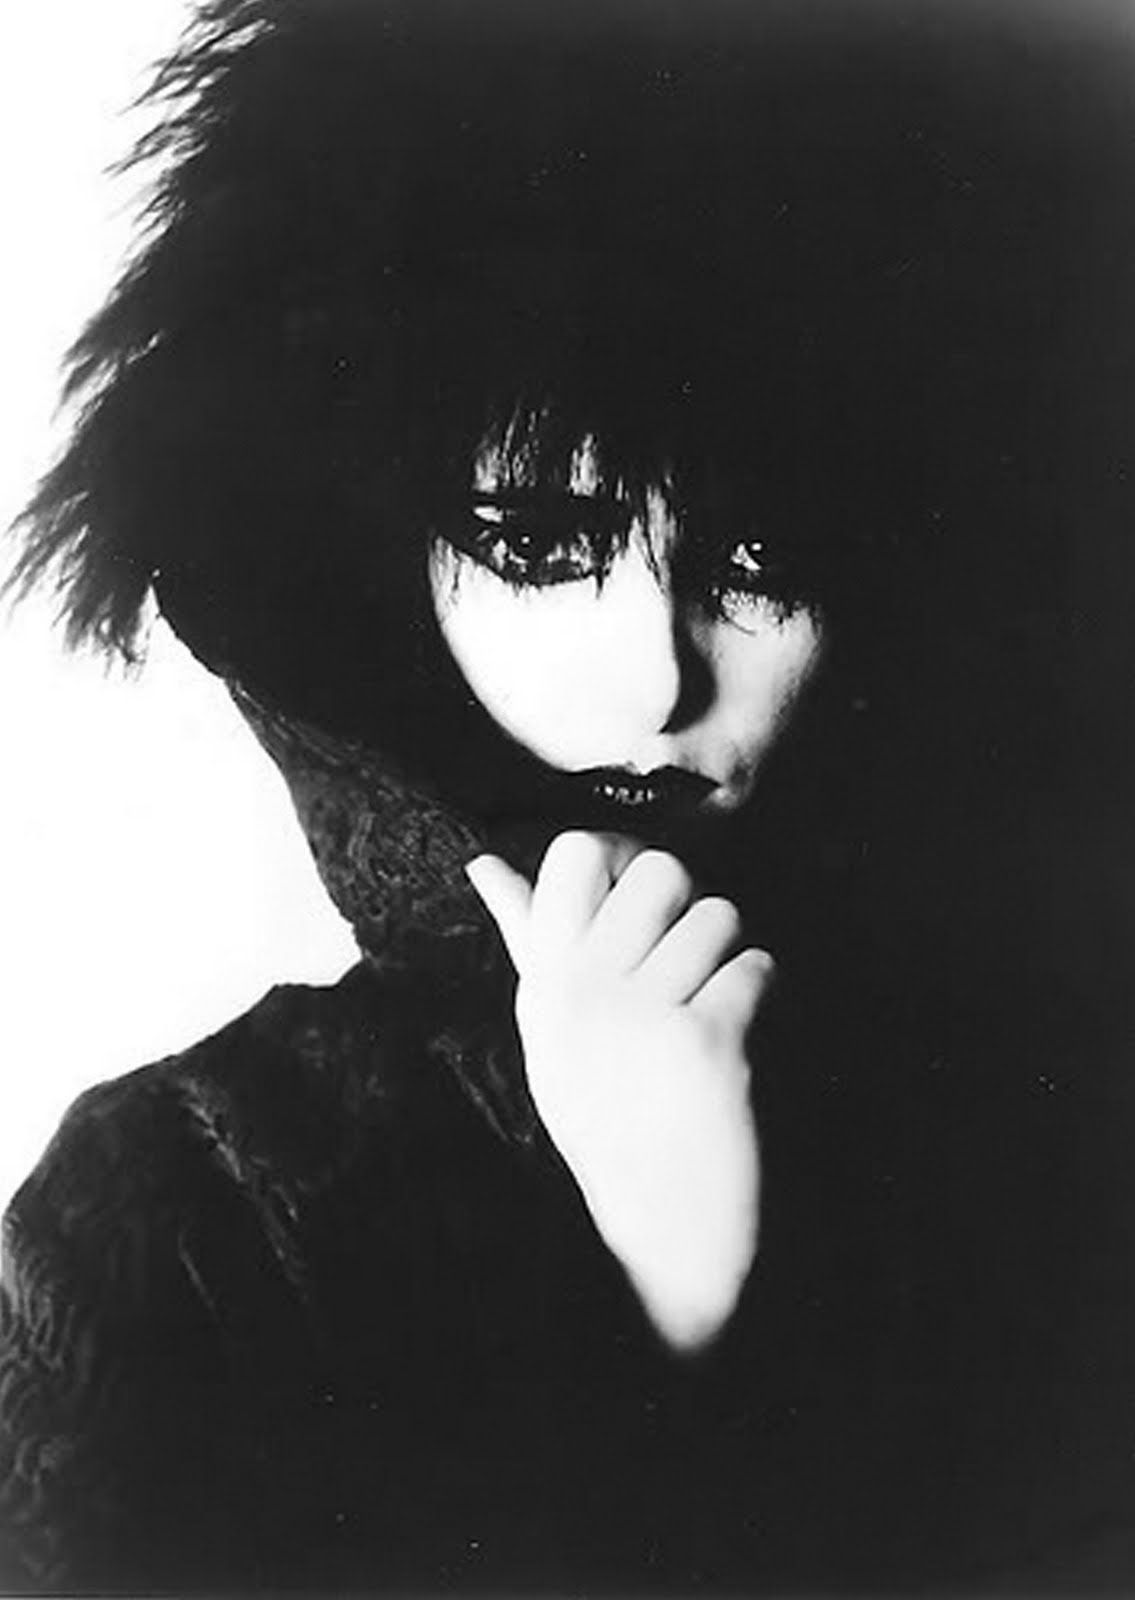 Siouxsie and The Banshees - Siouxsie Sioux | Sioux Me | Pinterest